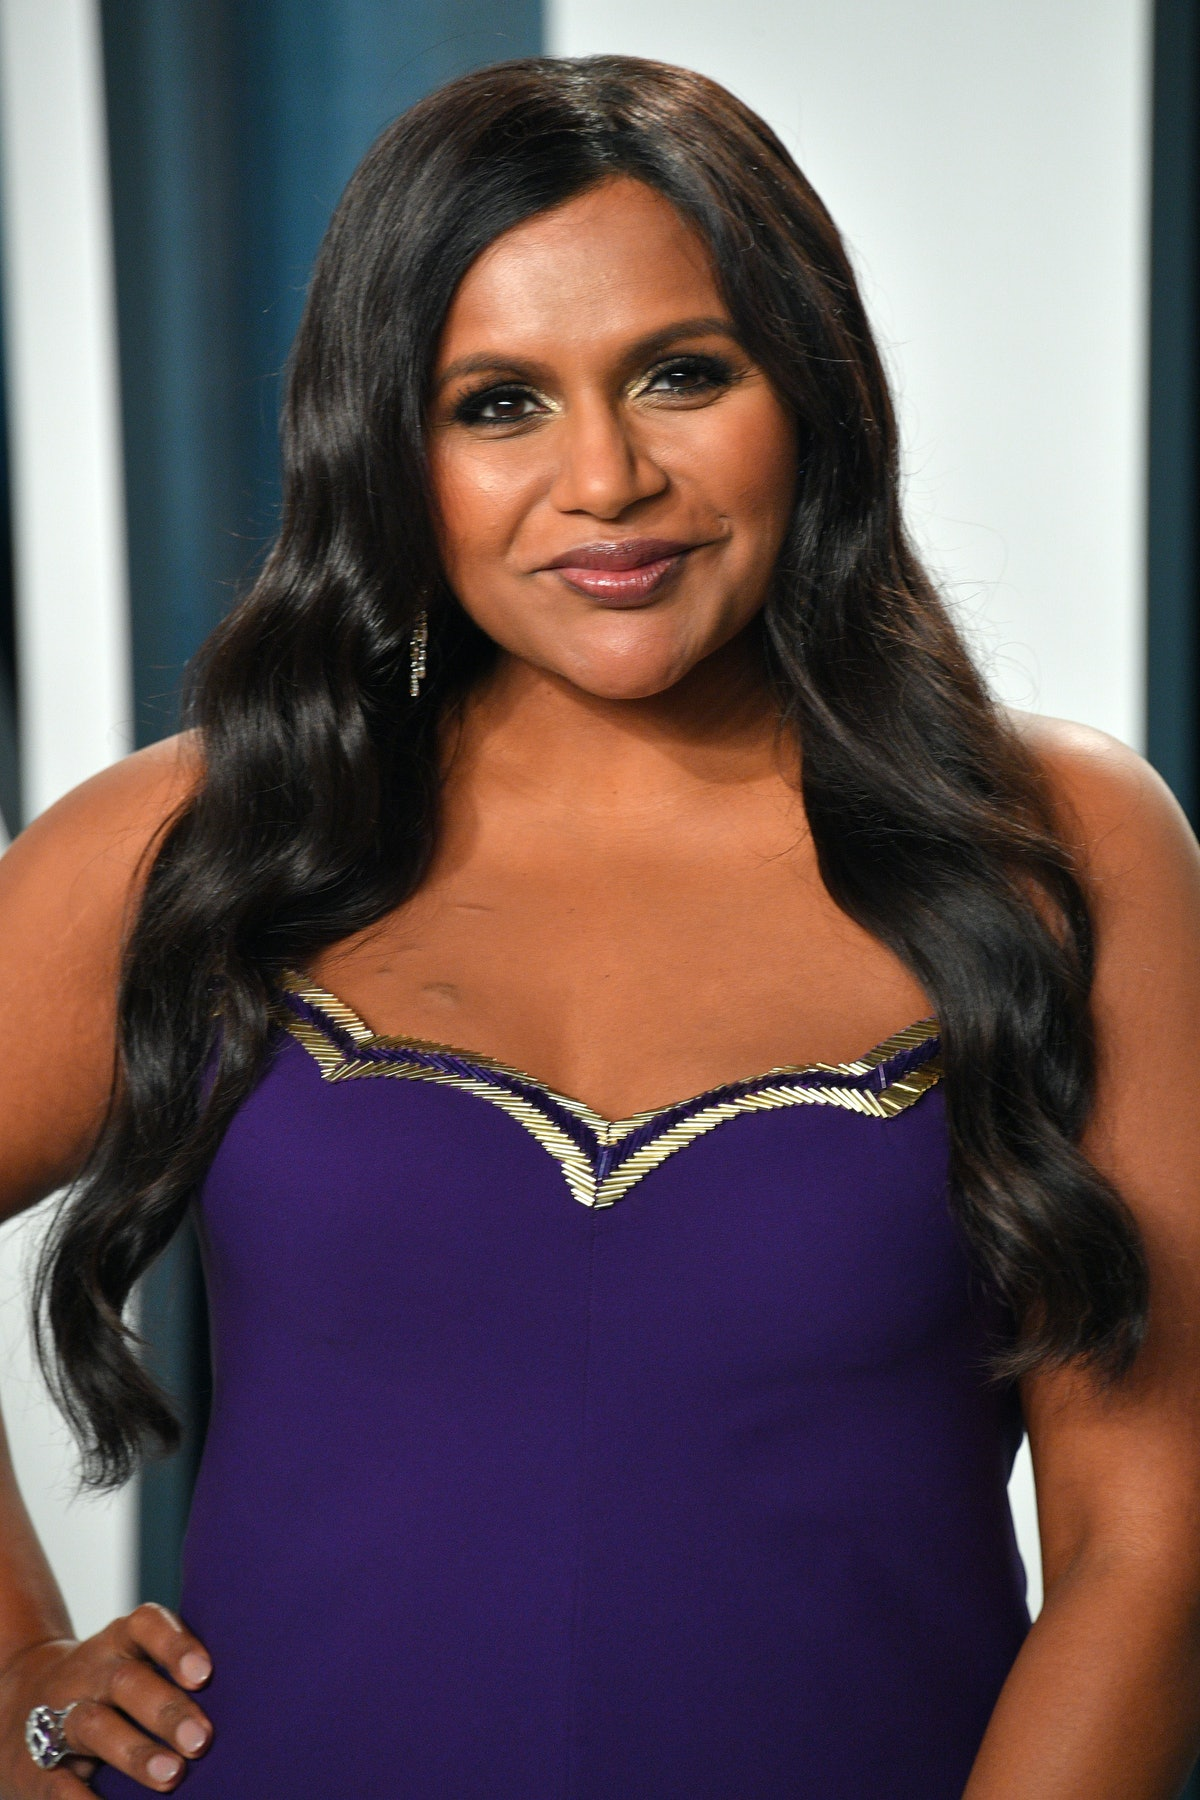 Mindy Kaling attends the 2020 Vanity Fair Oscar party.